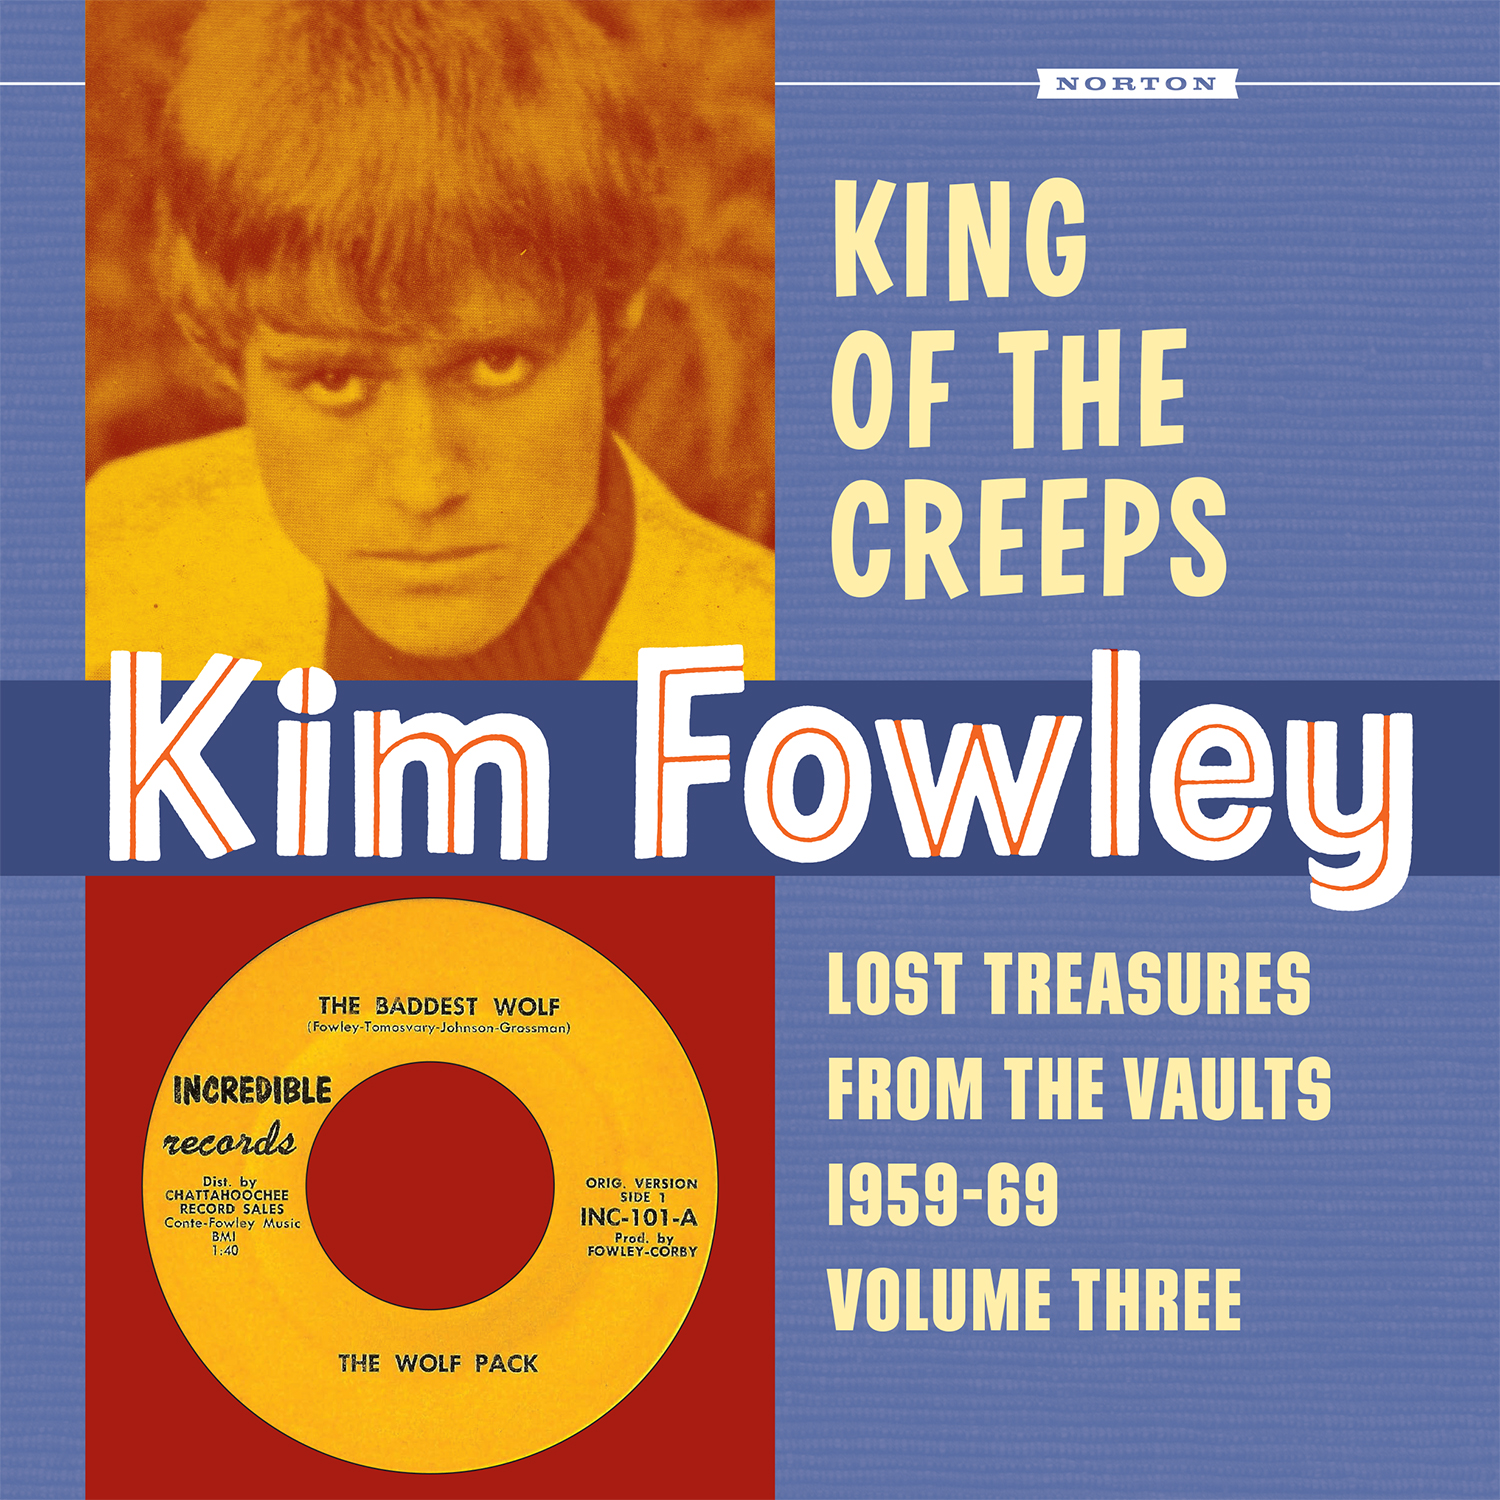 Kim Fowley - King of the Creeps LP/CD cover